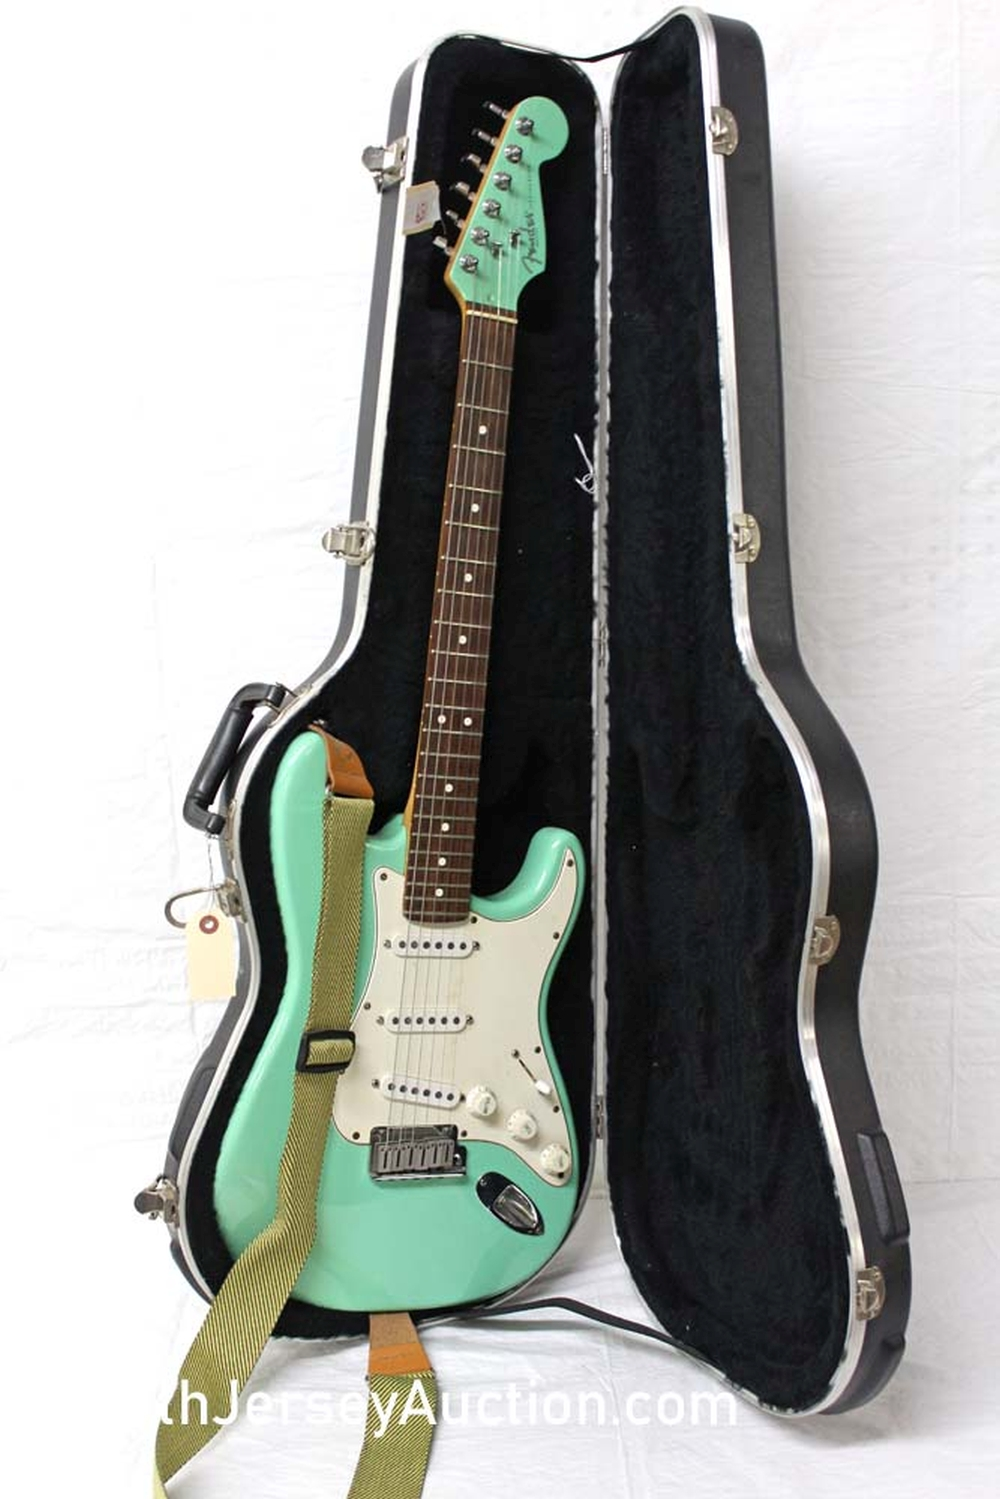 1995 Fender Stratocaster, made in the US, Sea-foam Green (color only made for a couple of months), rosewood neck, with painted head stock, single single single pickup,  s/n n553625, rosewood fretboard,  with hard shell case, excellent condition